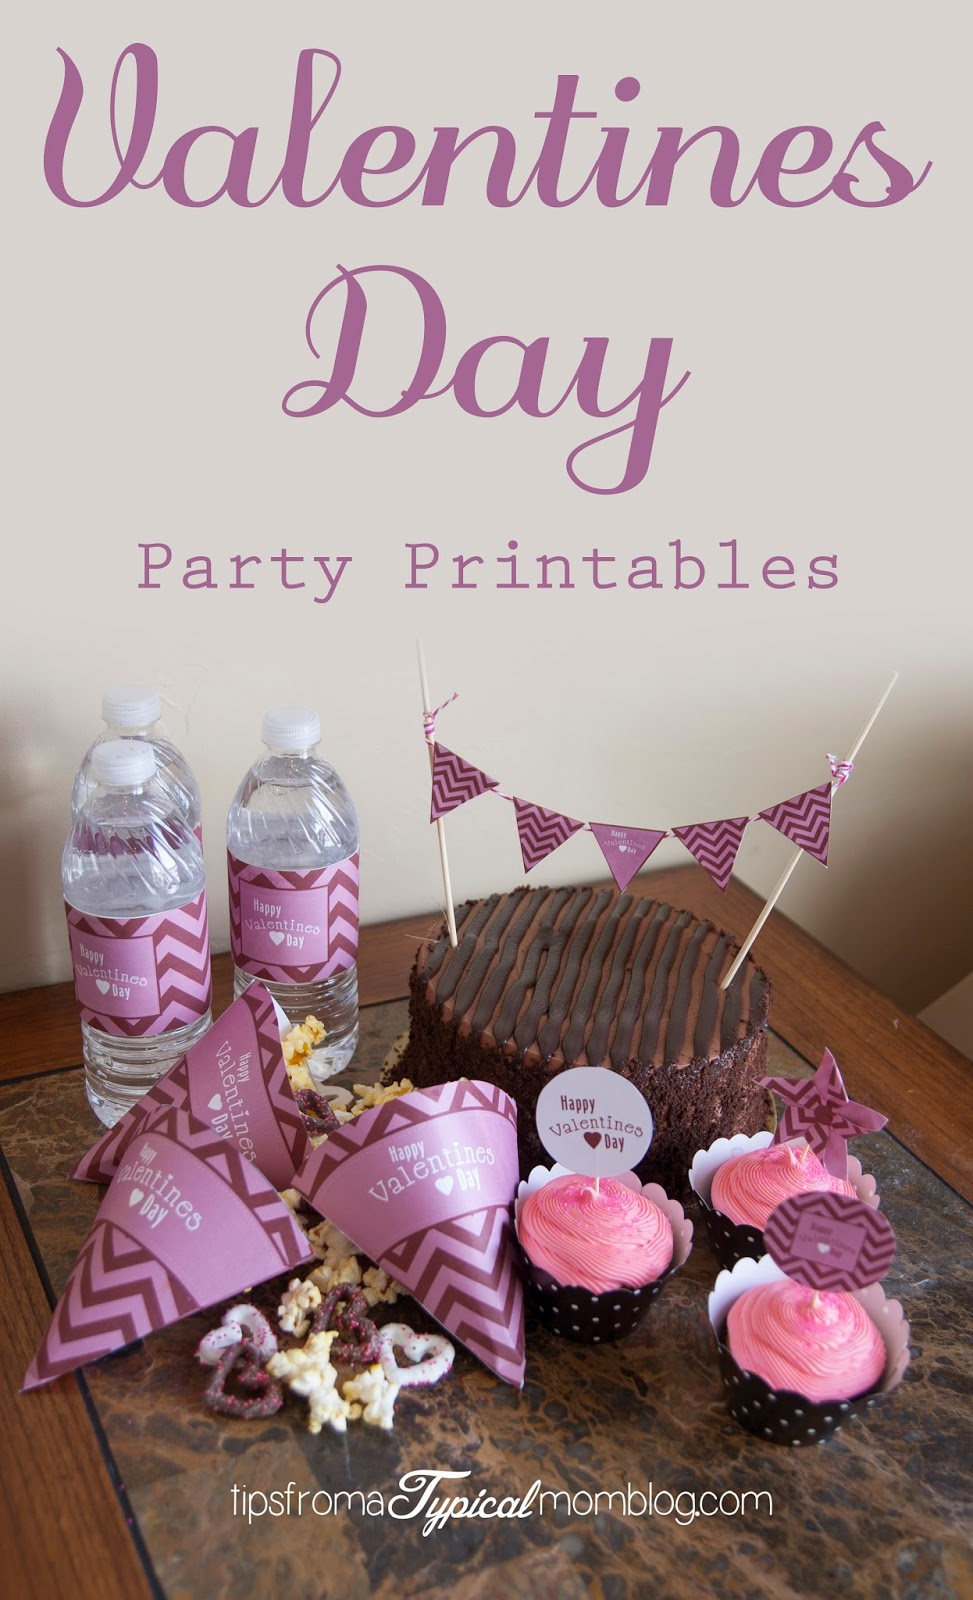 Free Valentines Day Chevron Party Printables from Tips From a Typical Mom Blog. These include, cupcake toppers, water bottle labels, treat cones and a cake banner.